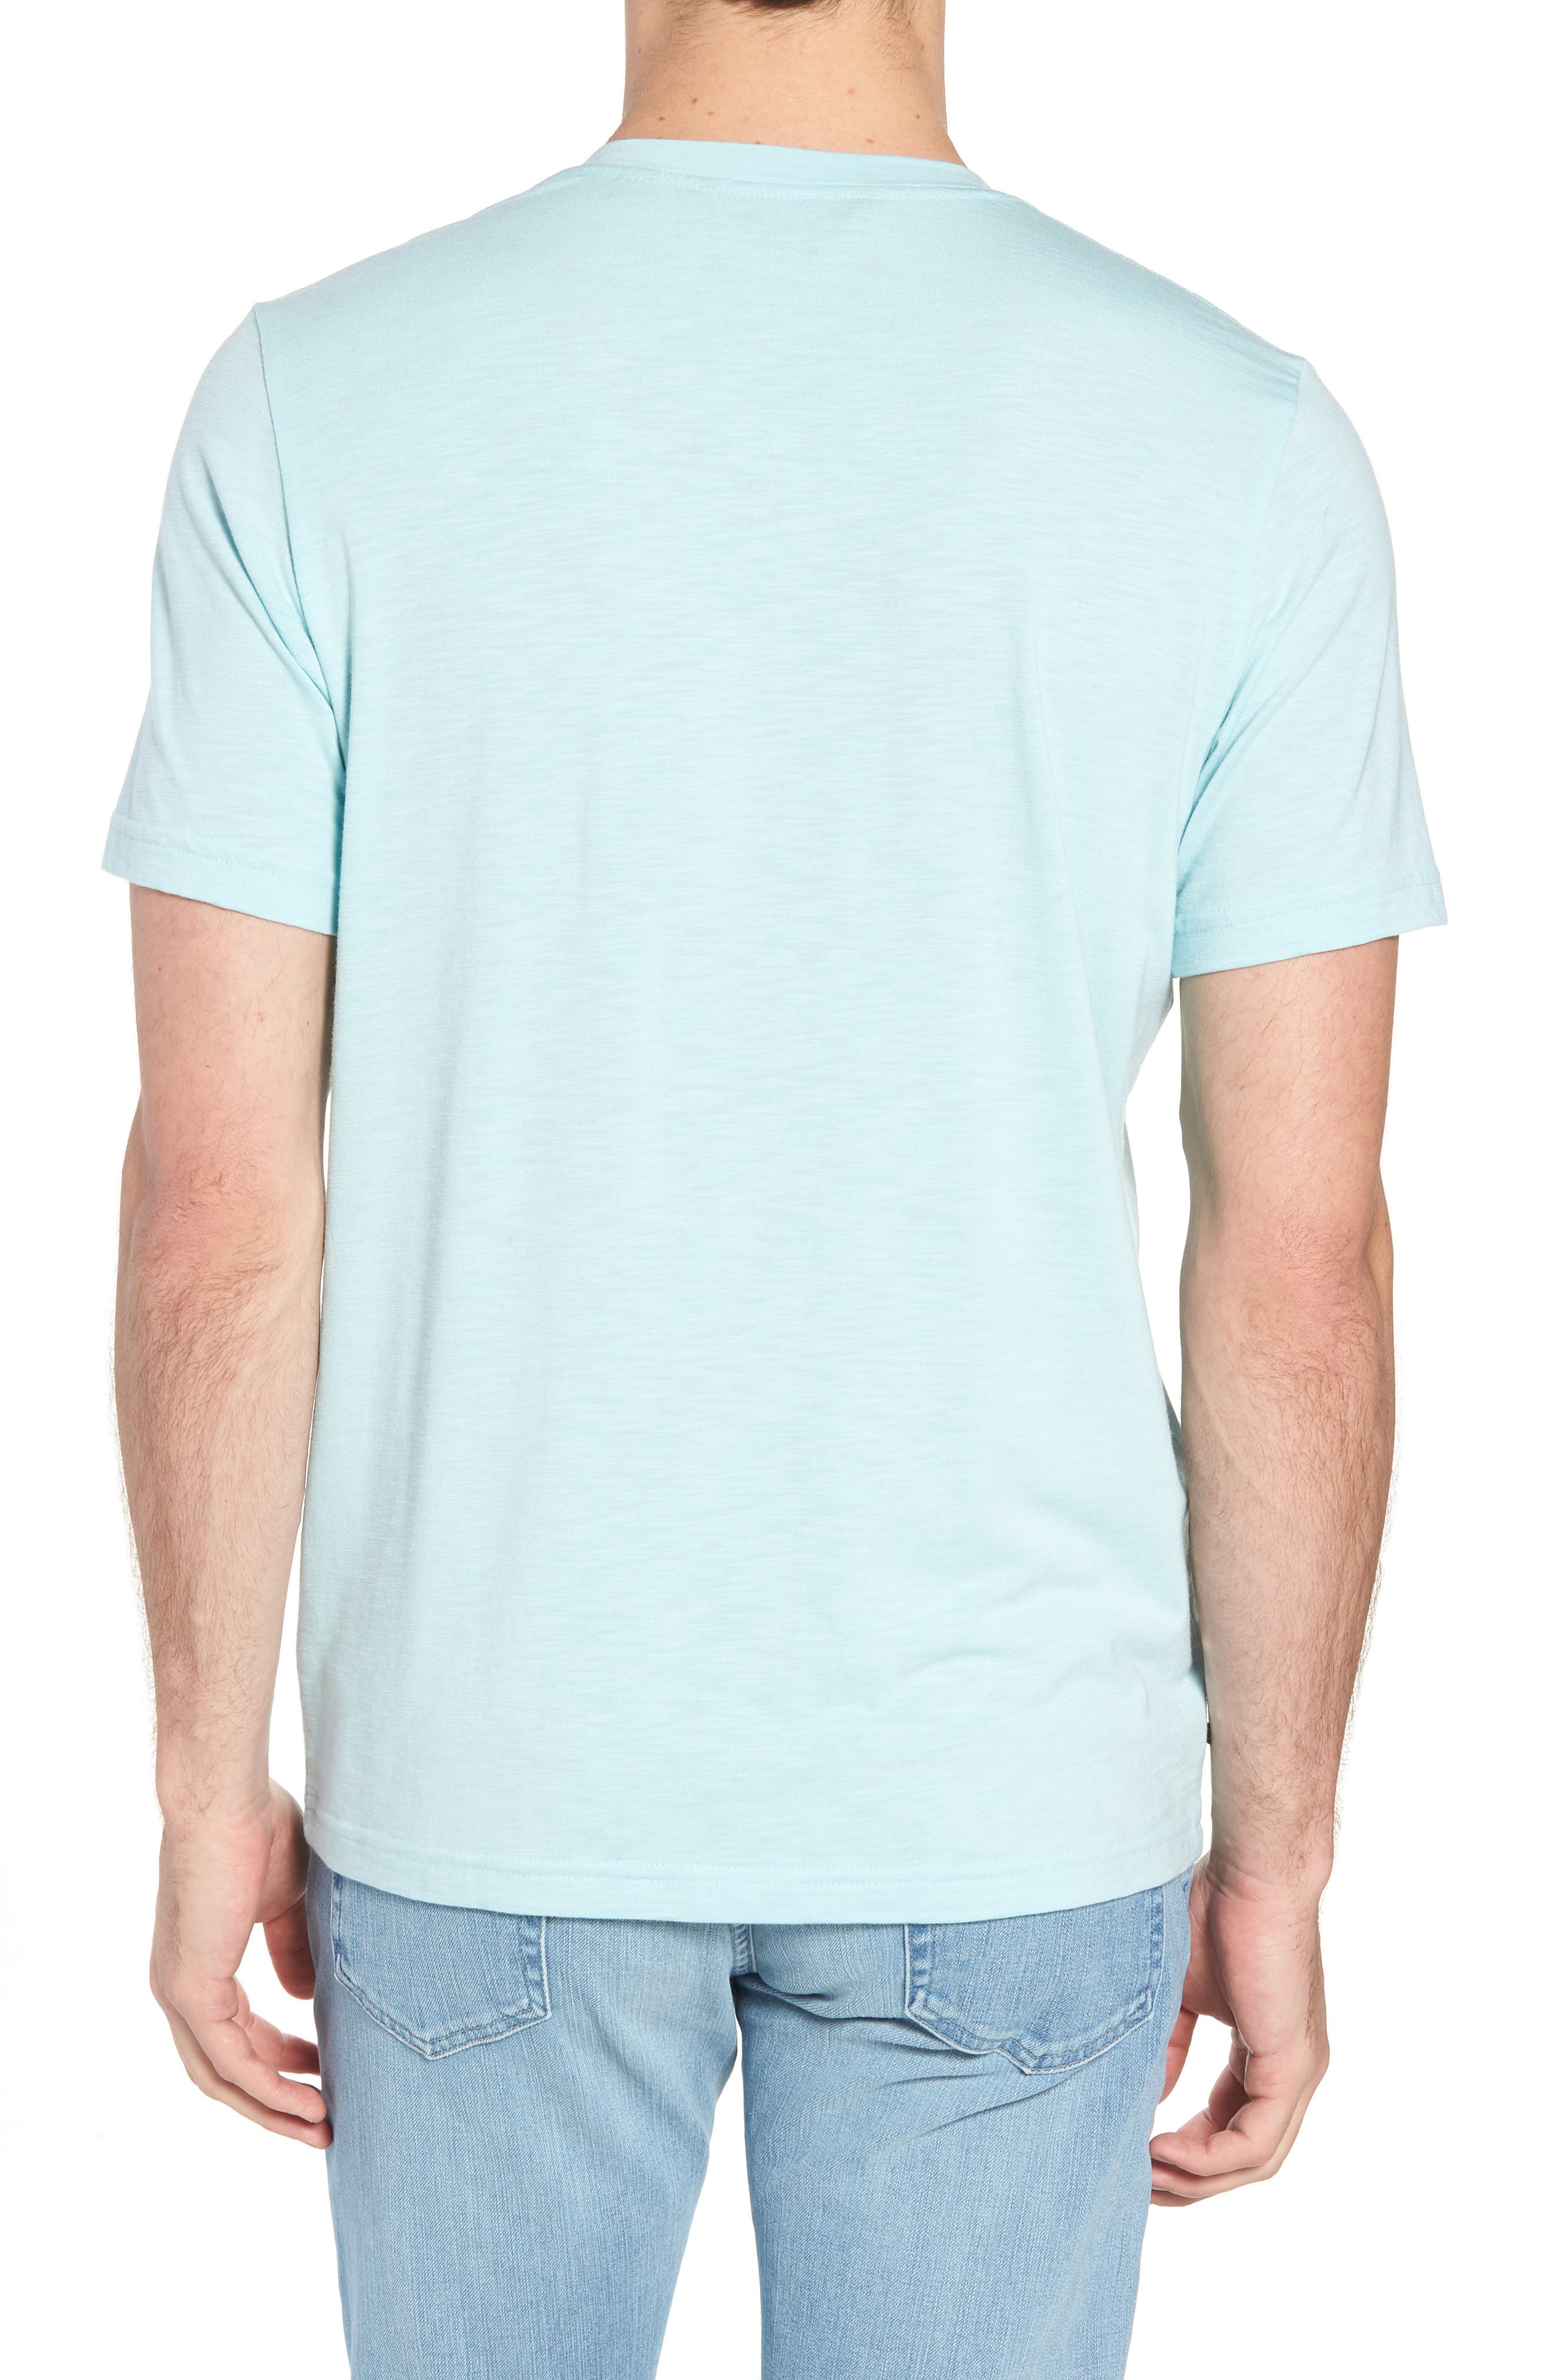 'Trumbull' Trim Fit Slubbed T-Shirt,                             Alternate thumbnail 2, color,                             PORCELAIN BLUE